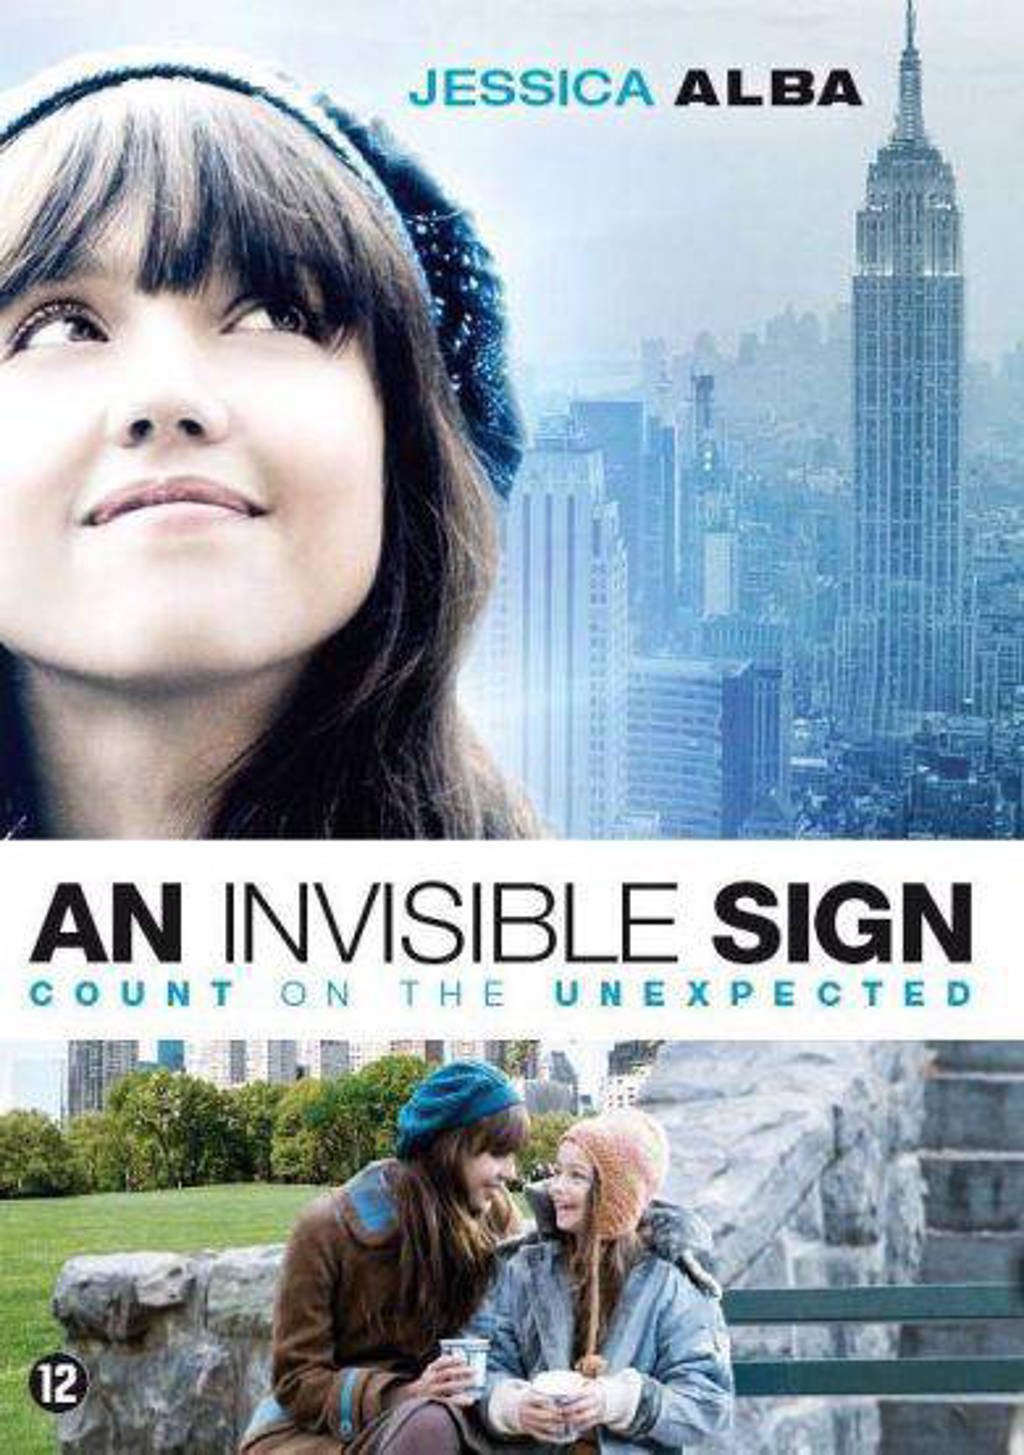 Invisible sign (DVD)